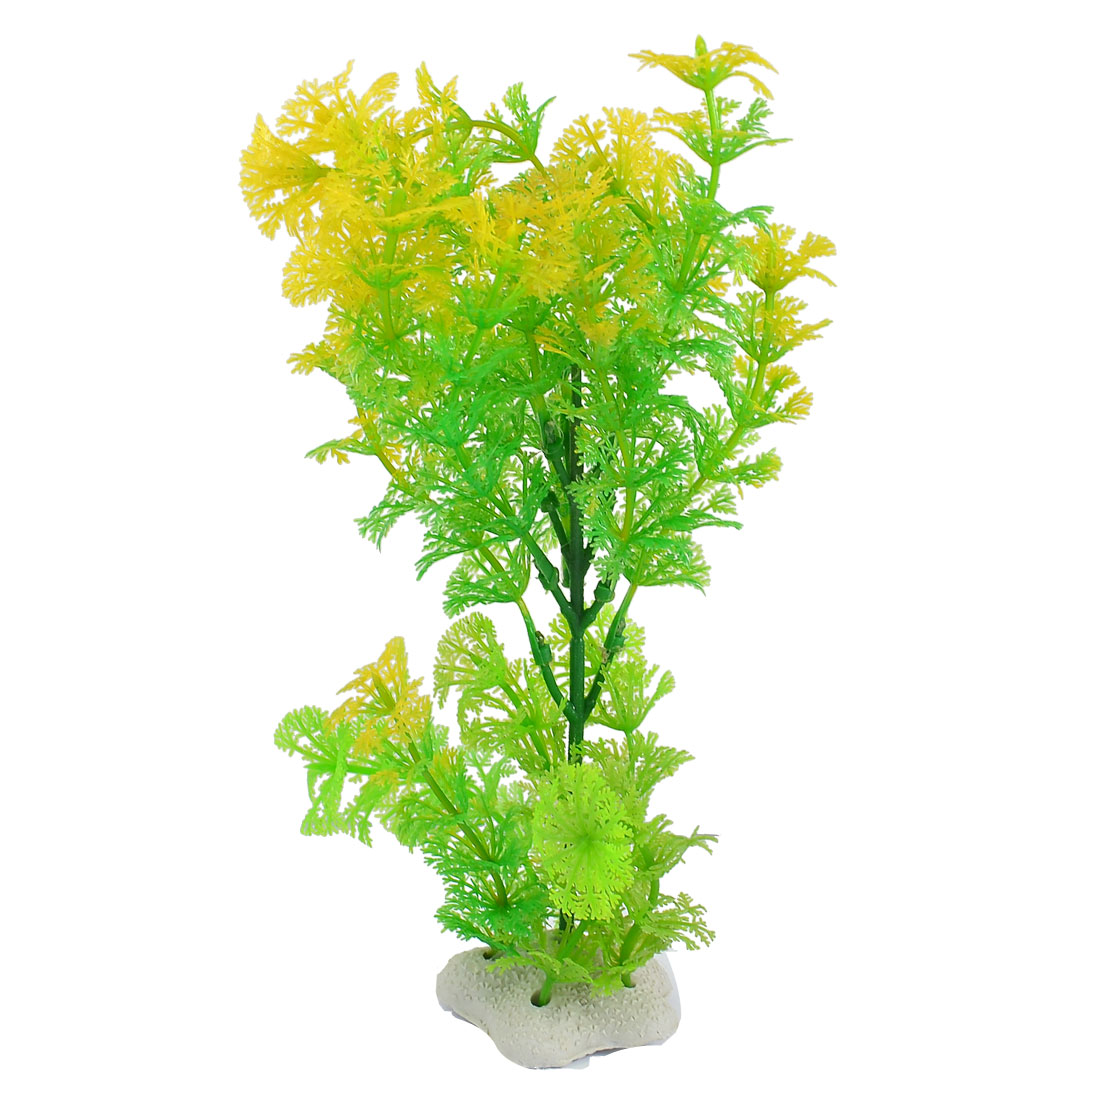 Aquarium Plastic Green Yellow Snowflake Leaf Aquatic Plant Adorn 9""